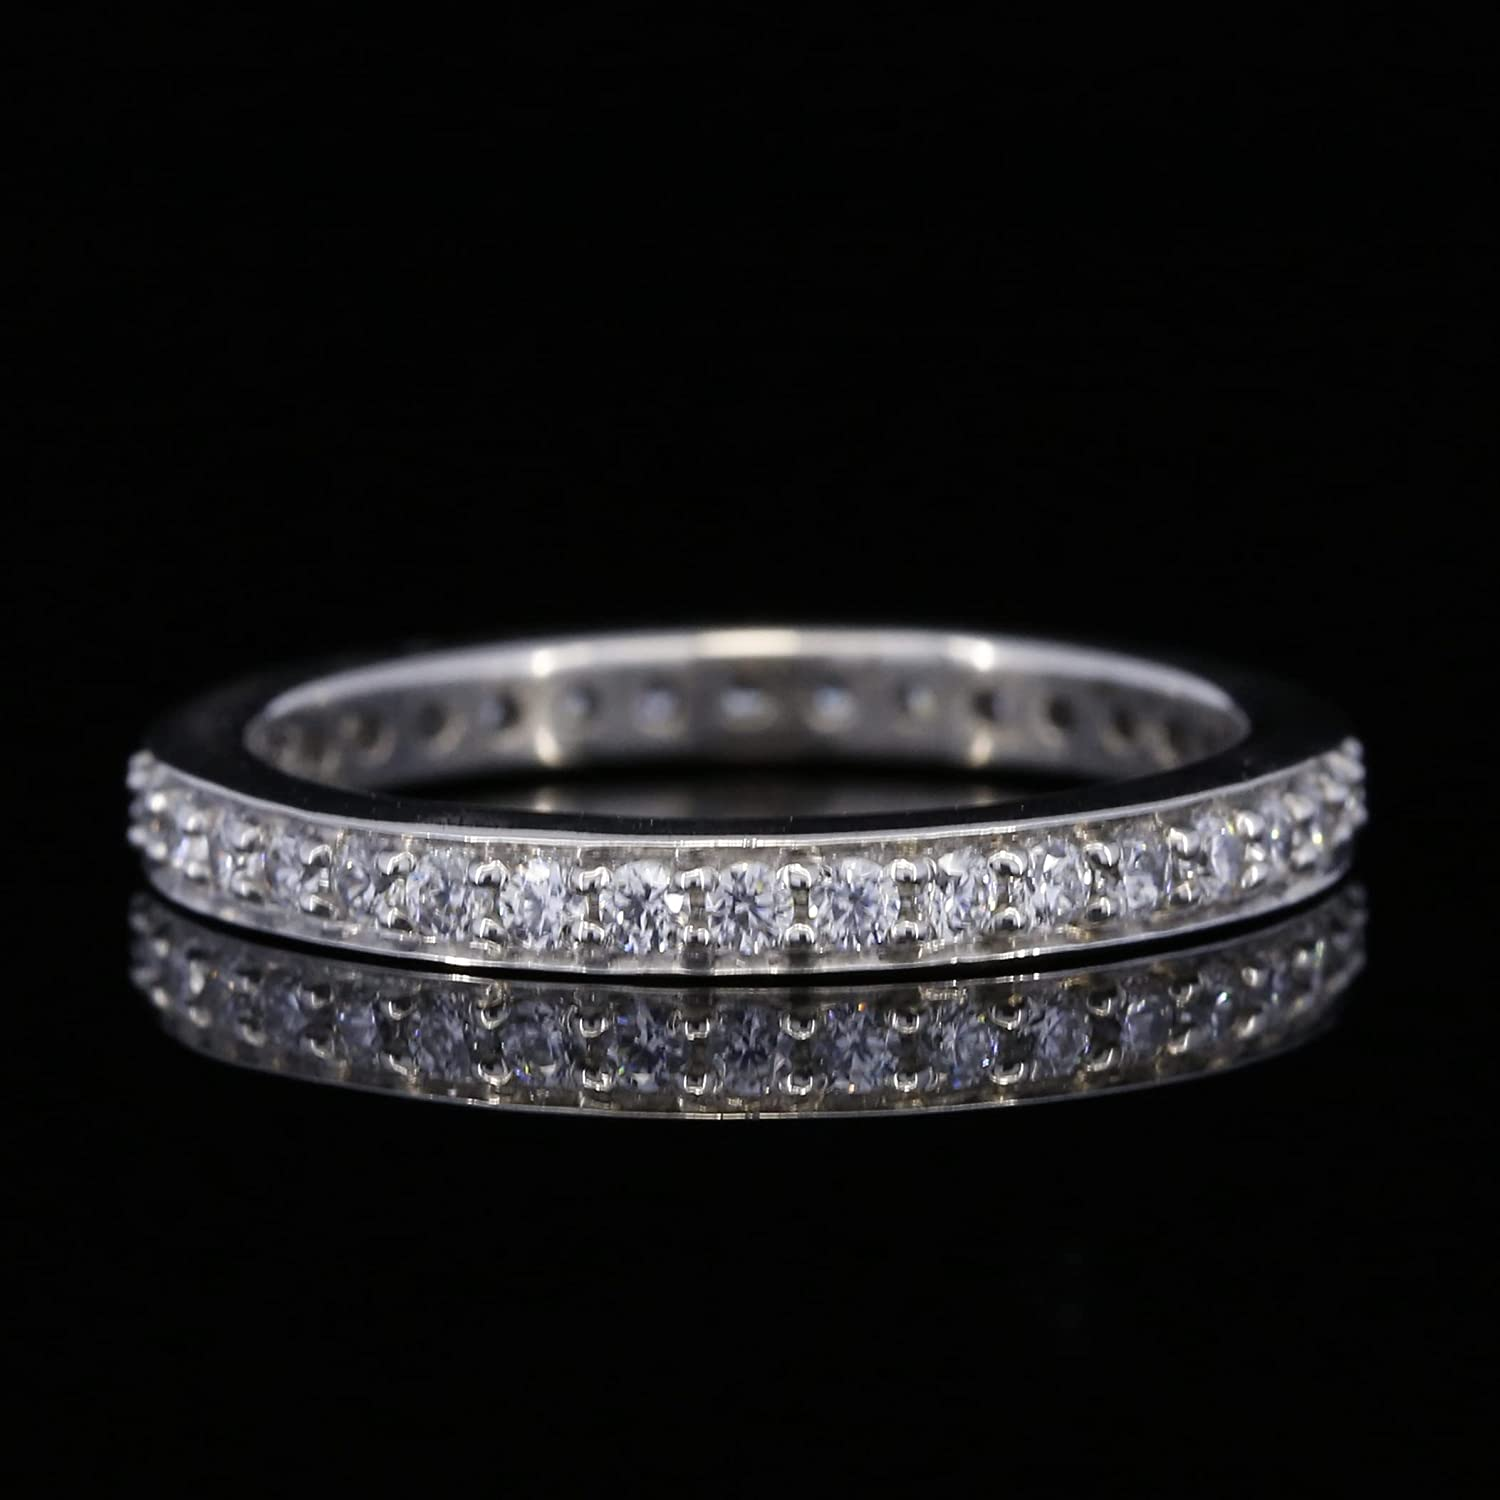 Austin Mall Facets Jewels Wedding Ring Guard Anniversary Enhancer ! Super beauty product restock quality top! Band Forev